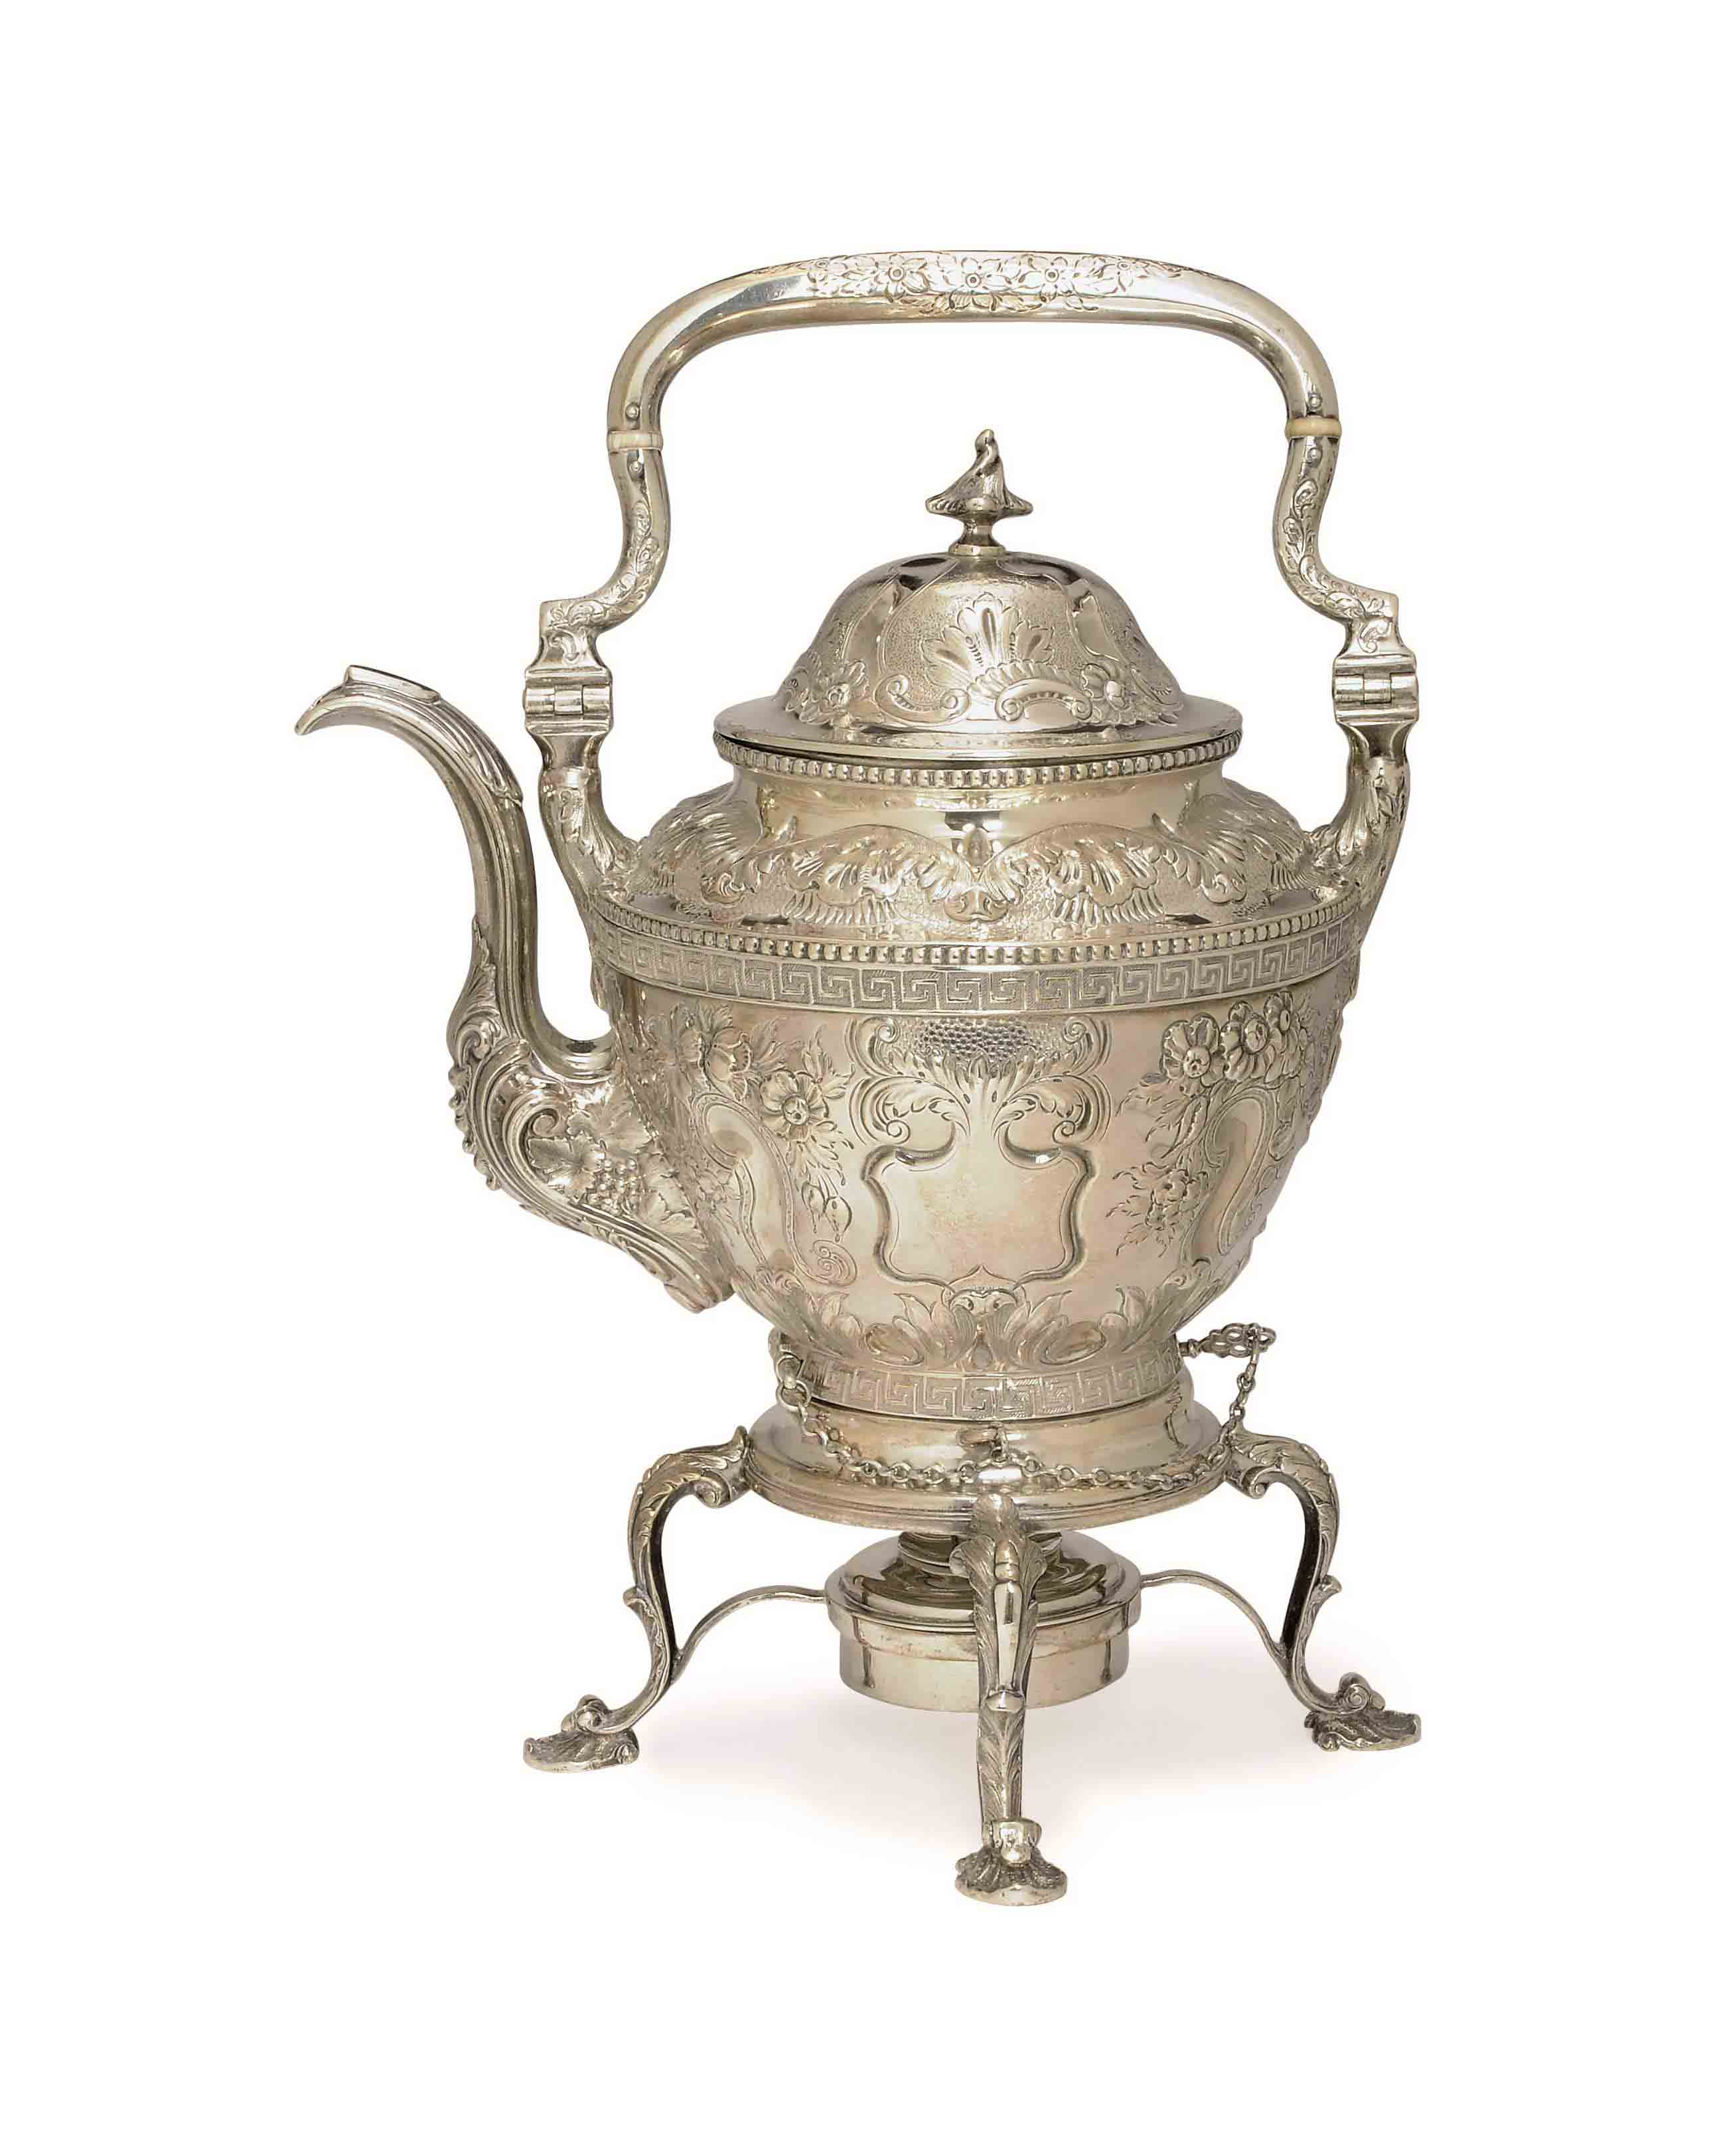 AN AMERICAN SILVER KETTLE ON STAND,